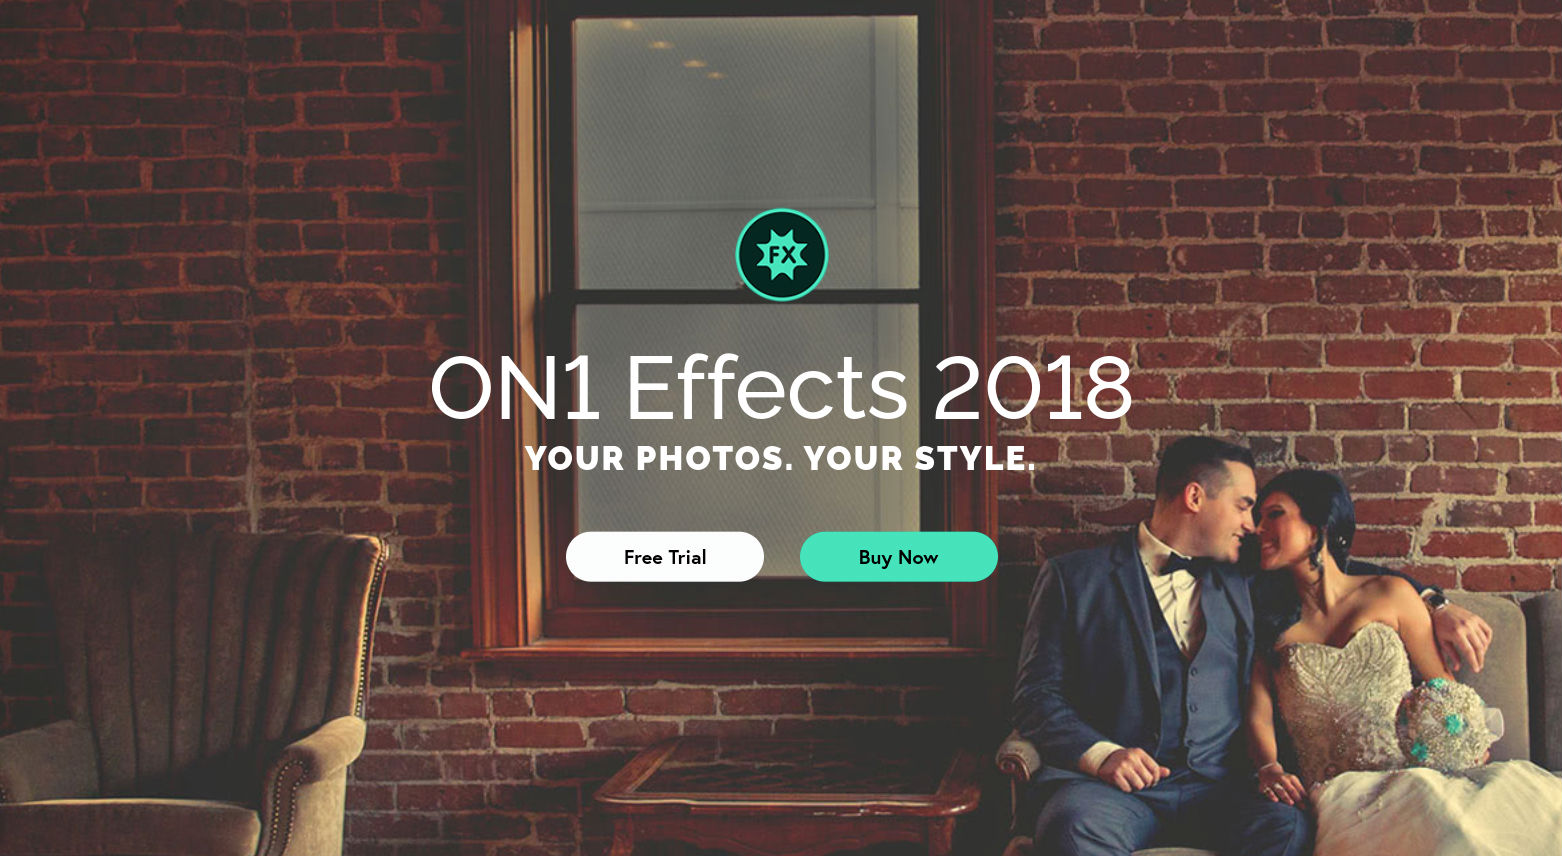 on1 effects 2018 free trial image